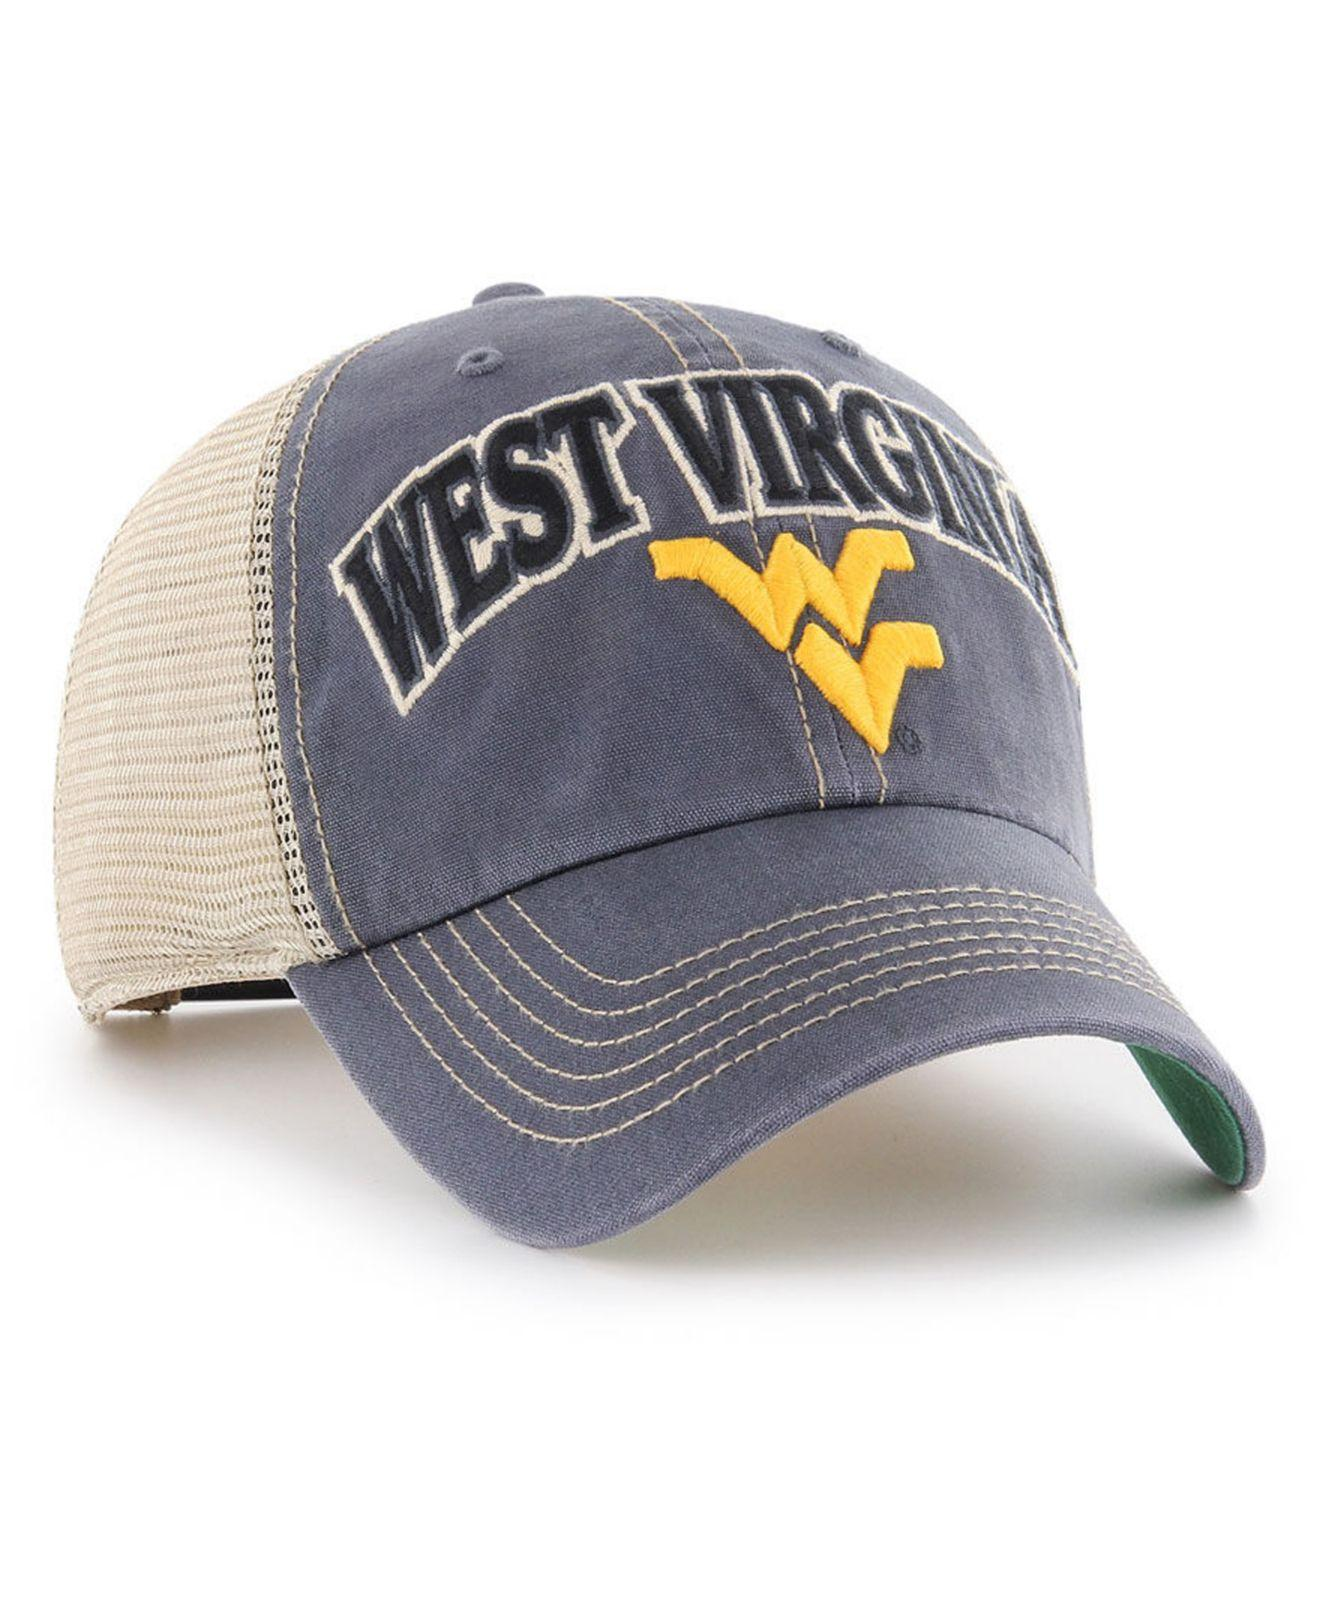 c81ca8d9dc03b Lyst - 47 Brand West Virginia Mountaineers Tuscaloosa Mesh Clean Up Cap in  Blue for Men